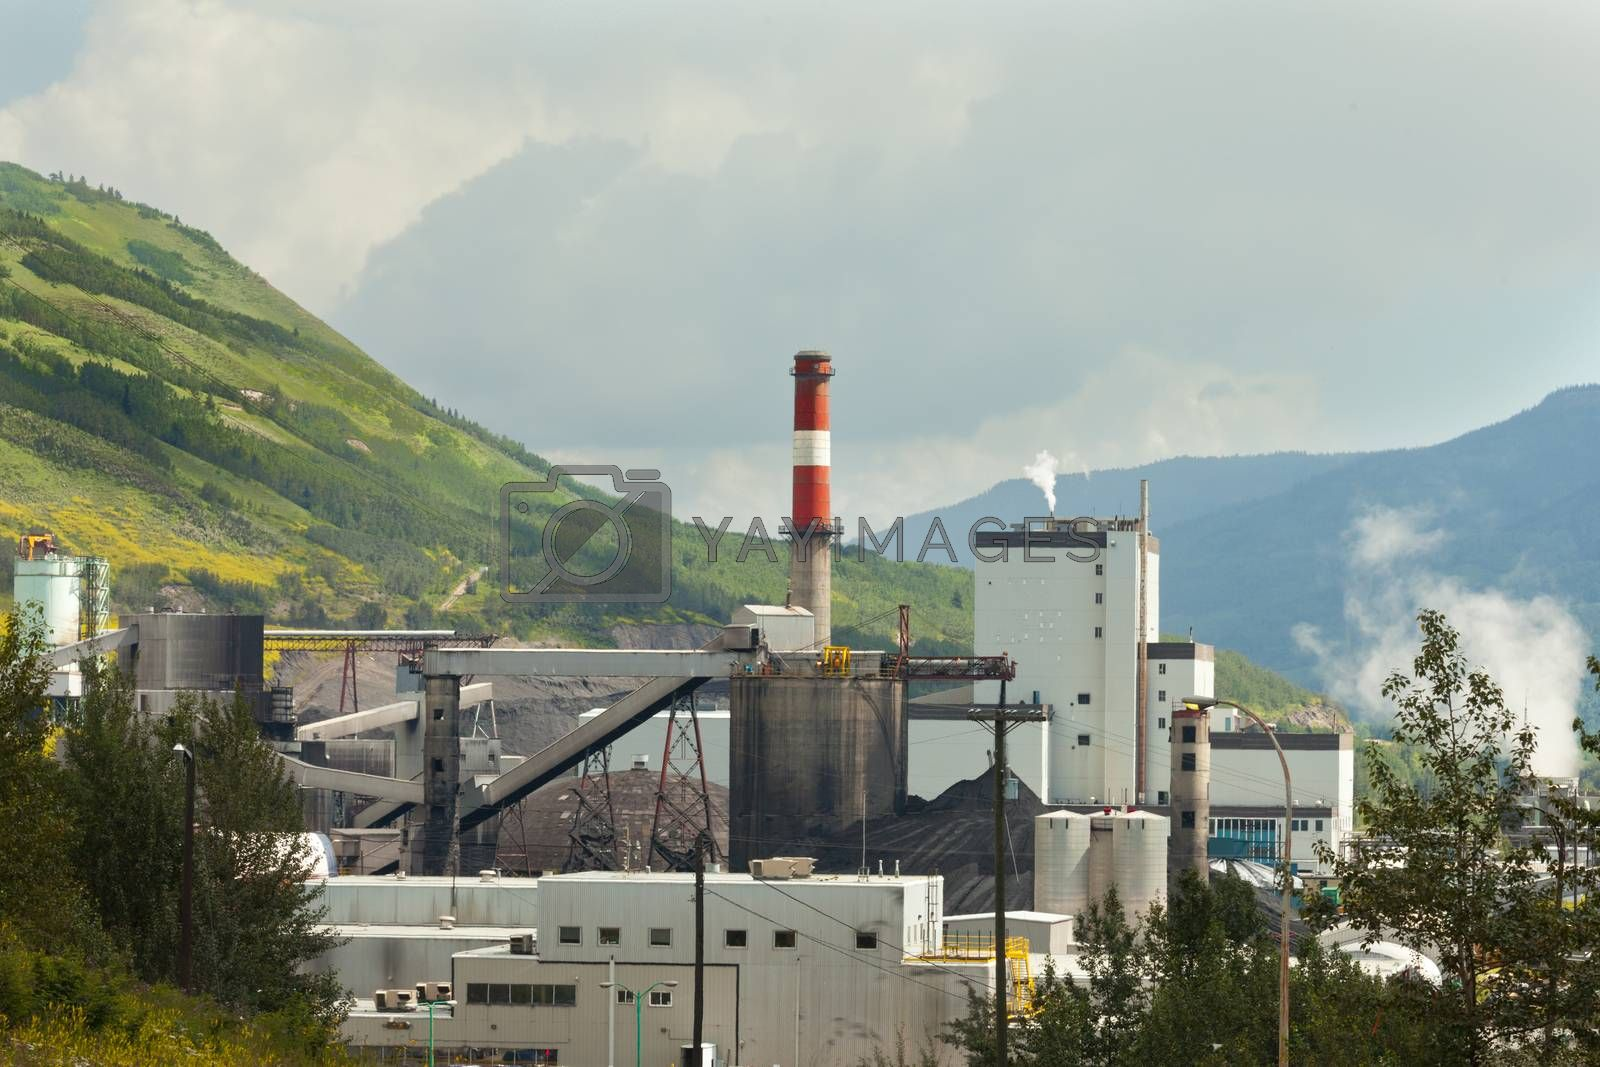 Coal mine electrical power plant contrast nature by PiLens